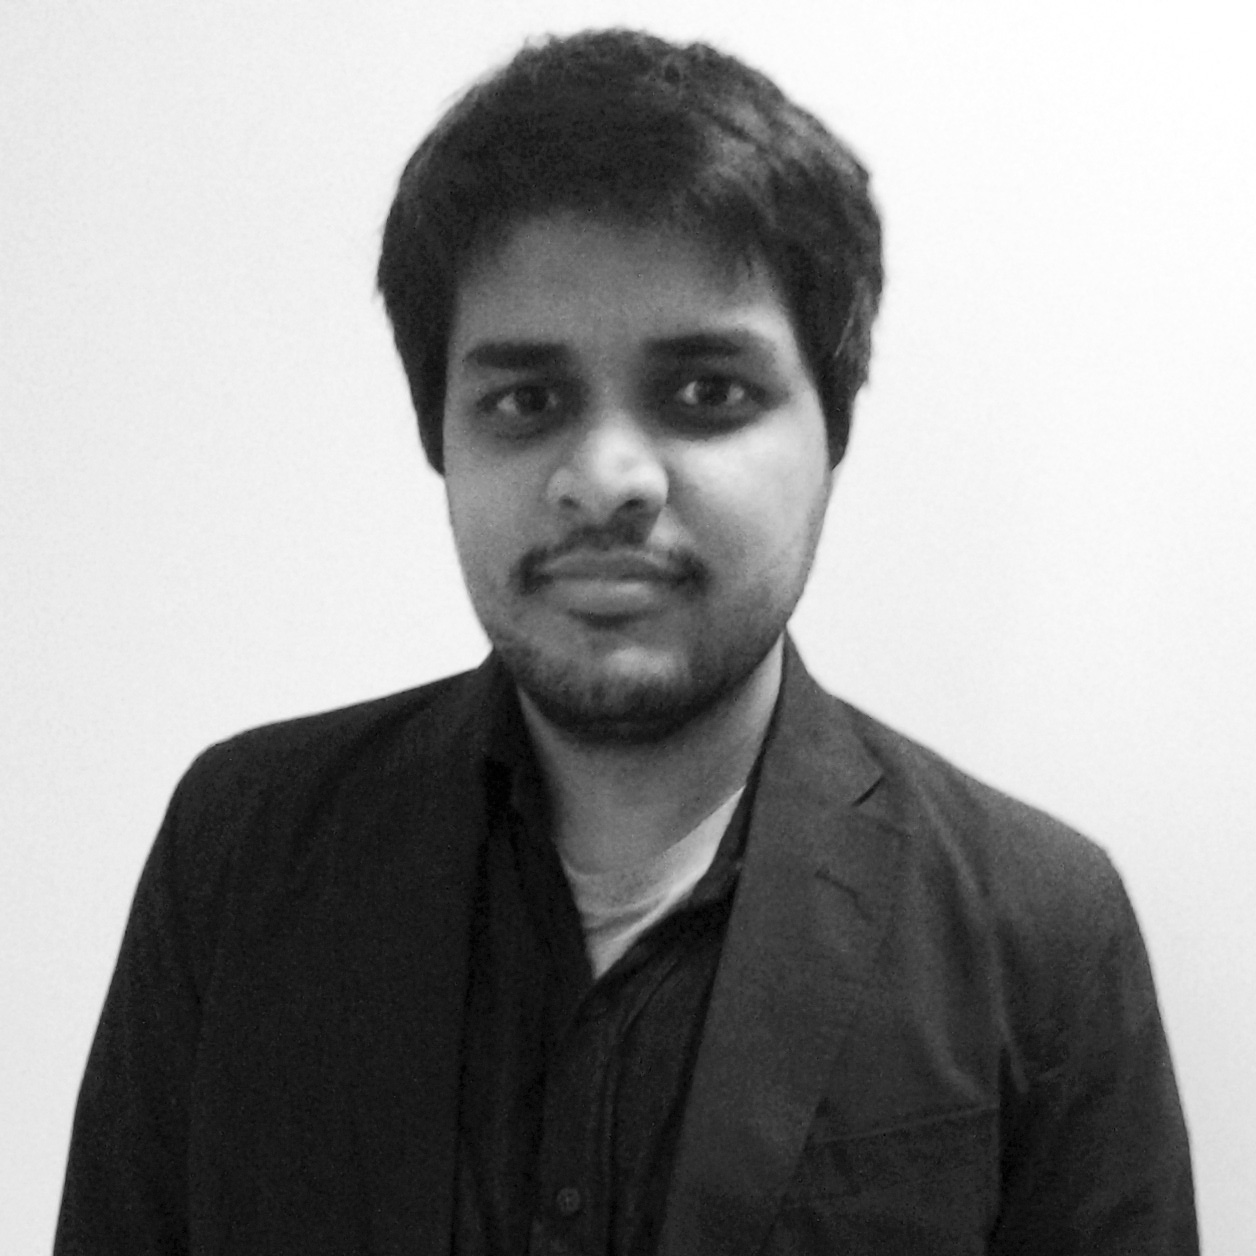 Tejas Sidnal   Transcraft //India   Architect from Mumbai, India. Tejas earned his B.Arch degree from the University of Mumbai in 2011. Having a strong inclination towards Biomimicry he has been researching over this field from the past 4 years. Successfully completed his Masters on Tata Scholarship in Emergent Technologies and Design (EmTech) with a distinction from Architectural Association (AA), School of Architecture during 2012 – 2013.